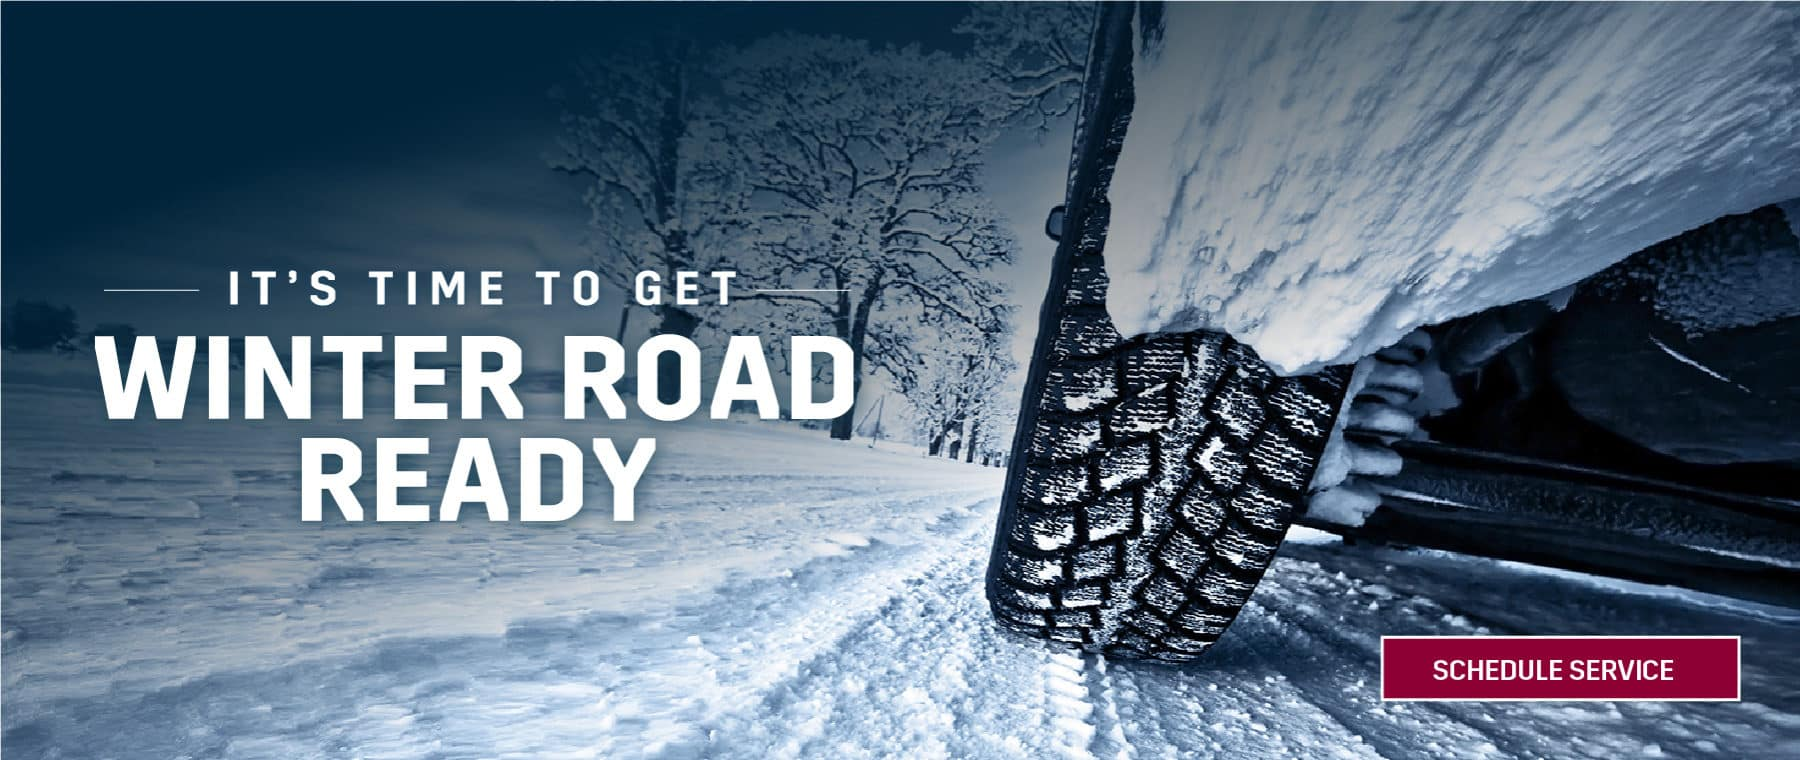 Get Winter Road Ready image with a tire in the snow